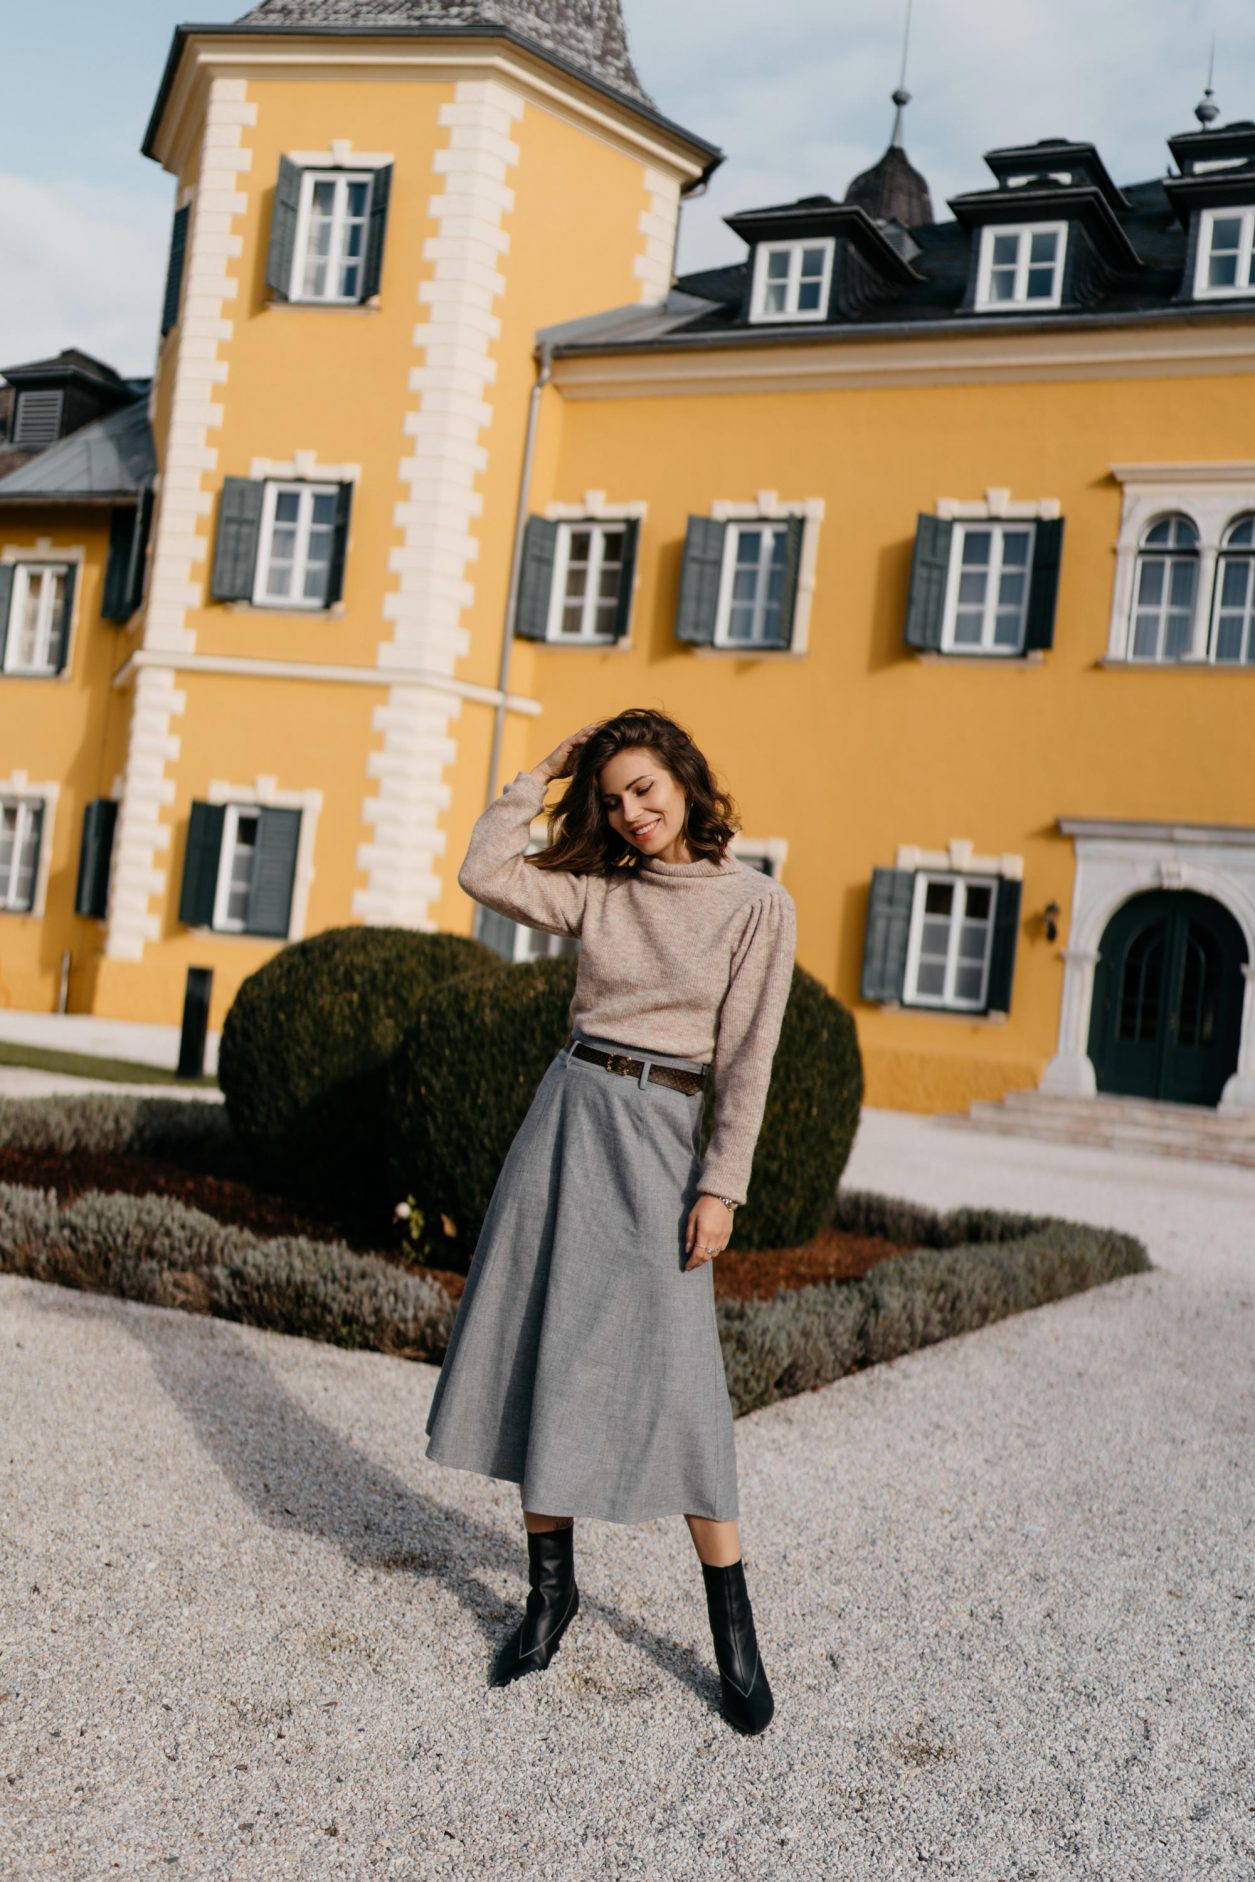 Masha Sedgwick | Fashion and beauty blogger from Berlin, Germany | AW19 outfit inspiration, cozy fall outfit wearing grey a-line skirt by Gestuz, beige knit pullover by Second Female, brown Louis Vuitton belt, black leather boots by Topshop | Minimalistic Scandinavian style, effortless cool, feminine, everyday business casual look